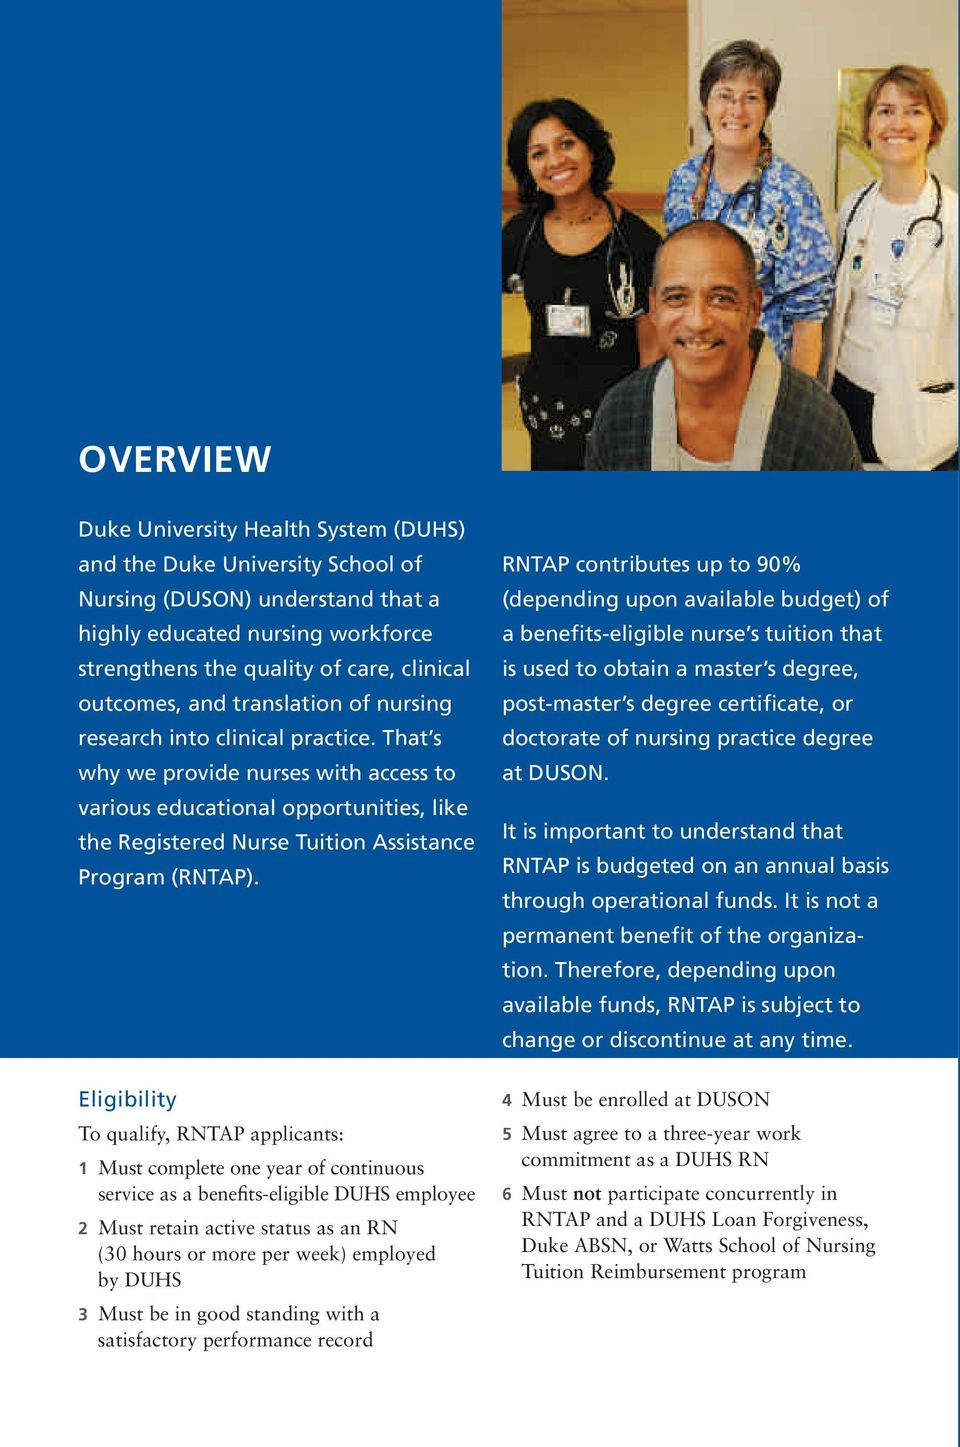 Registered Nurse Tuition Assistance Program (RNTAP) - PDF